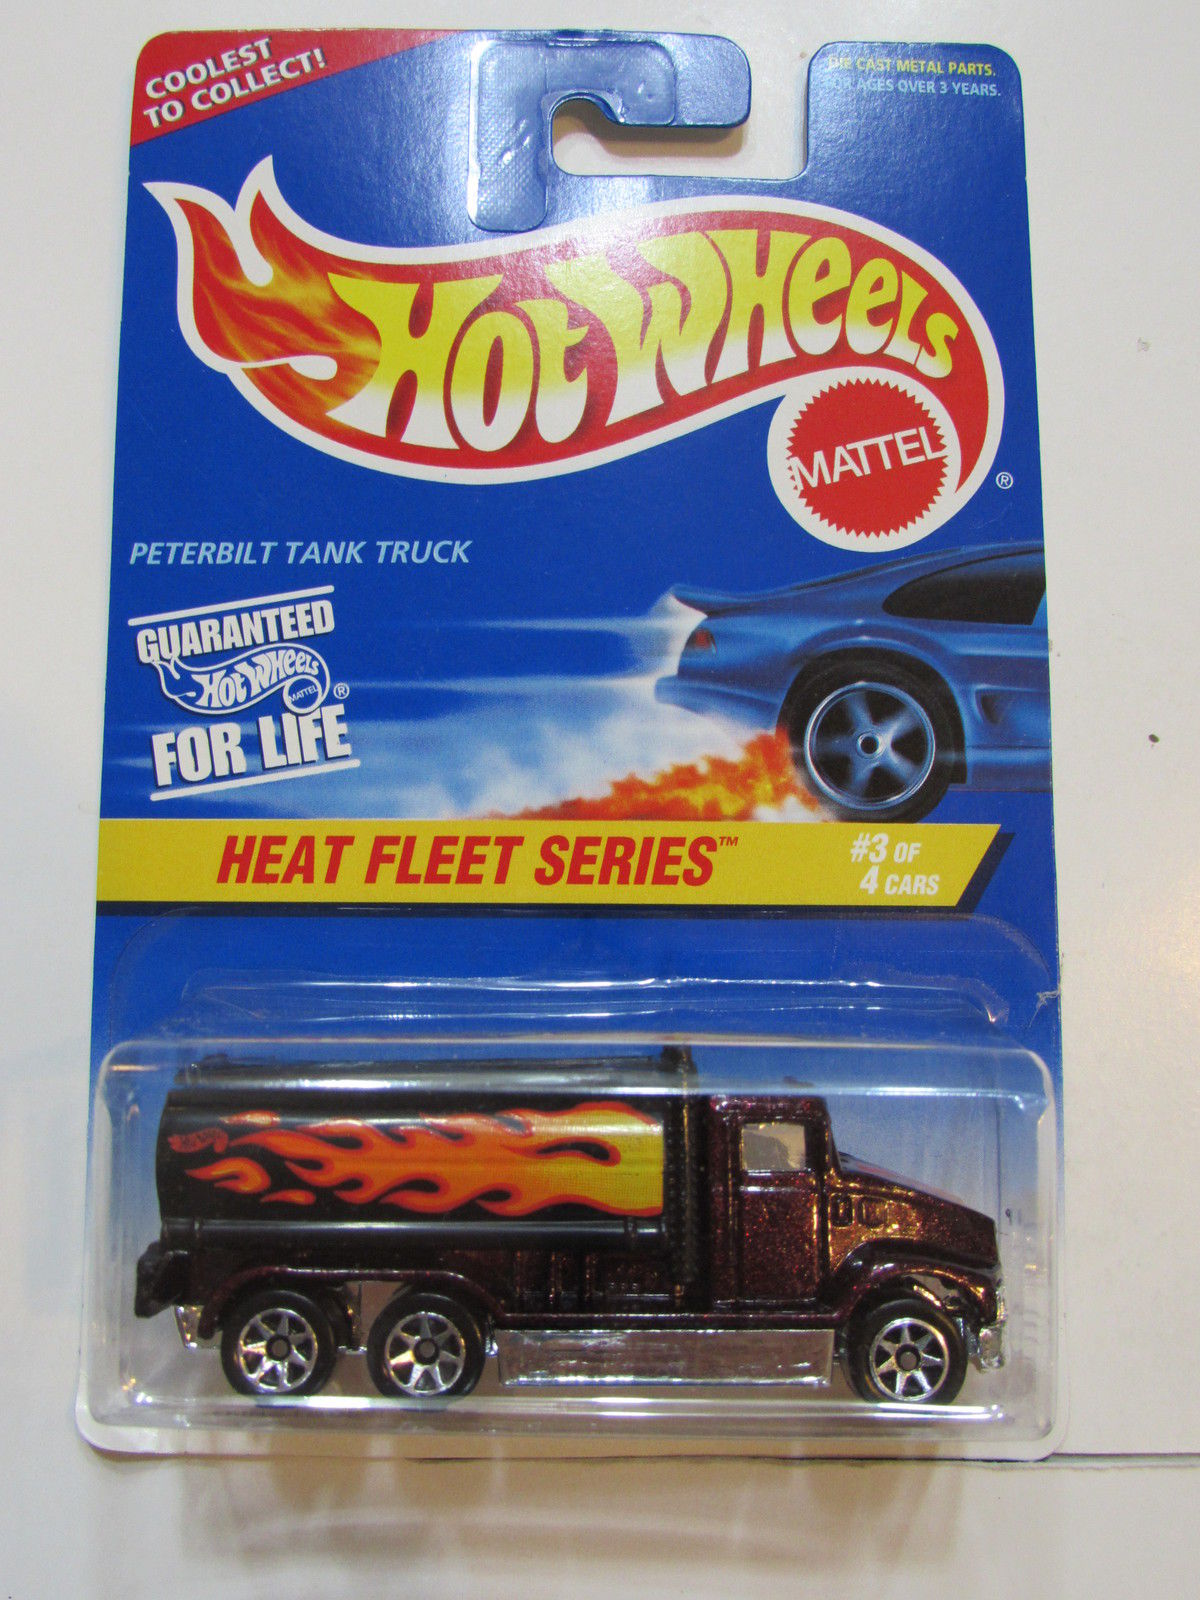 HOT WHEELS 1996 HEAT FLEET SERIES PETERBILT TANK TRUCK #539